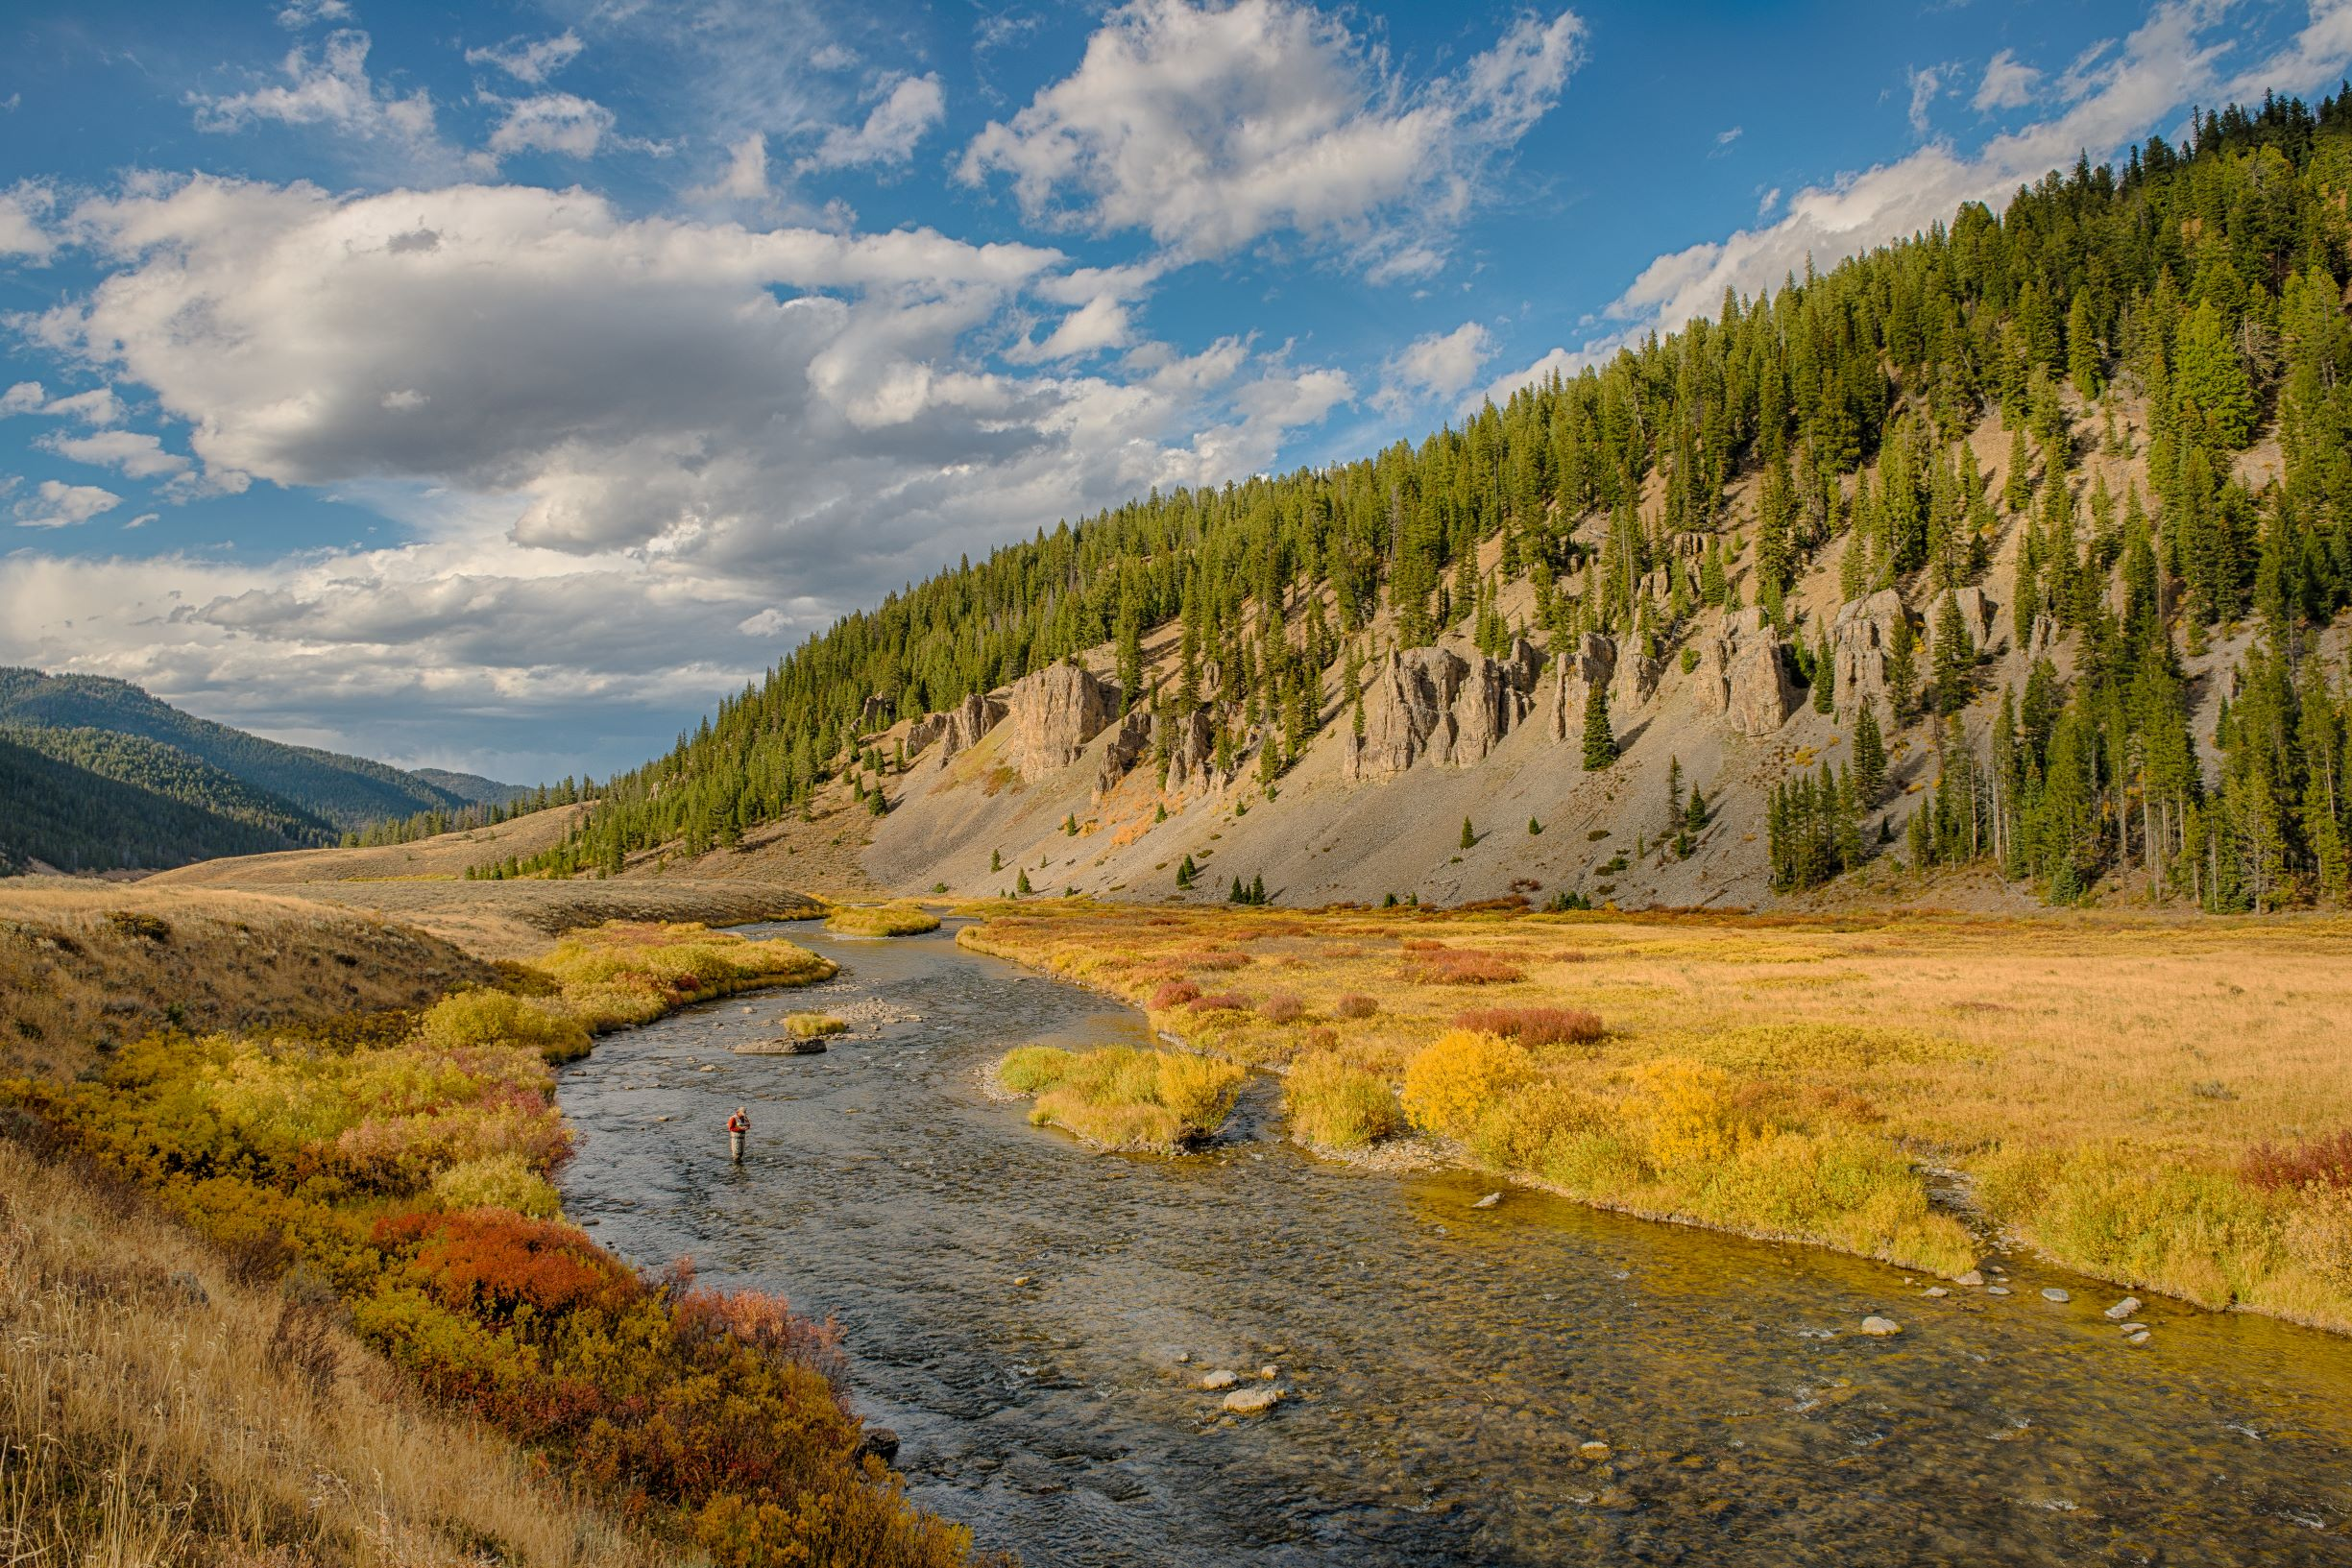 a picture of the Gallatin River in Montana in the fall